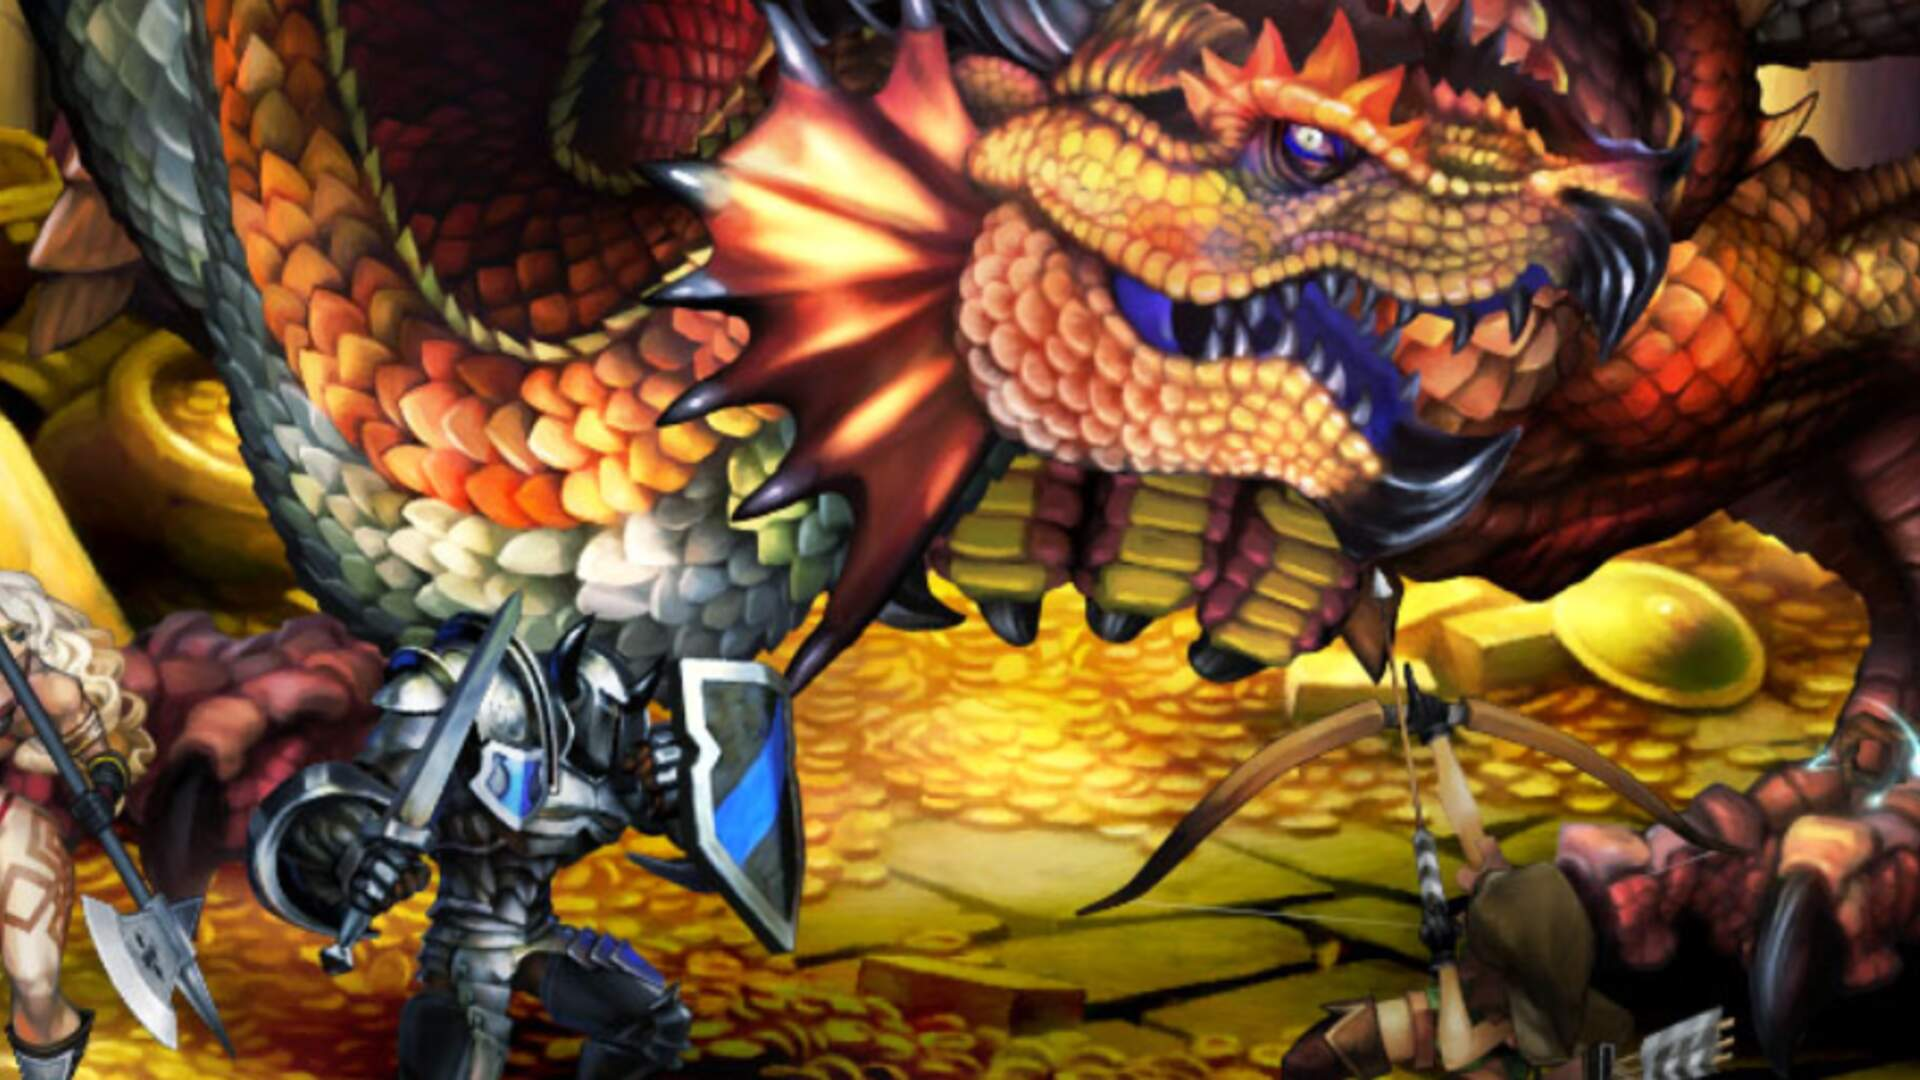 Dragon S Crown Deserves Another Chance As It Prepares For Release